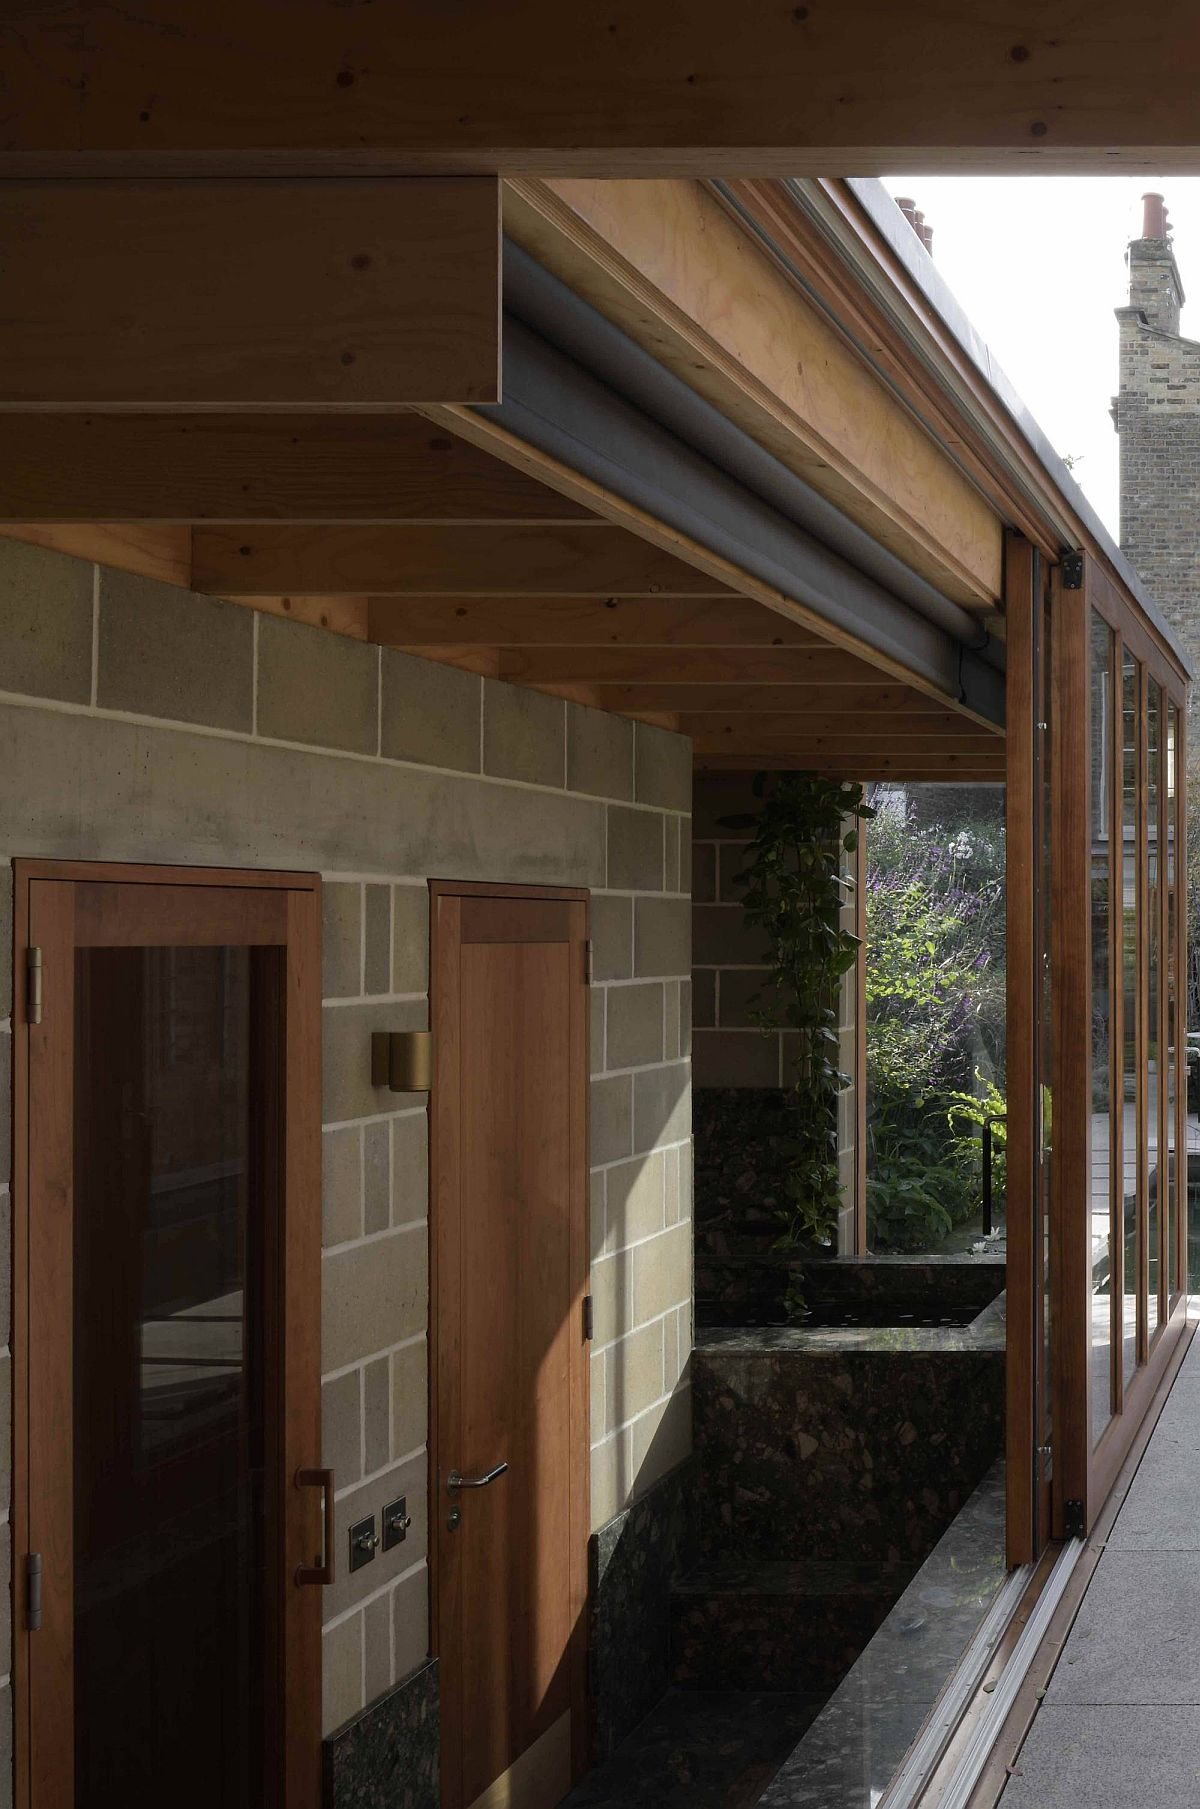 Engineered timber roof structure coupled with blockwork walls for the garden room